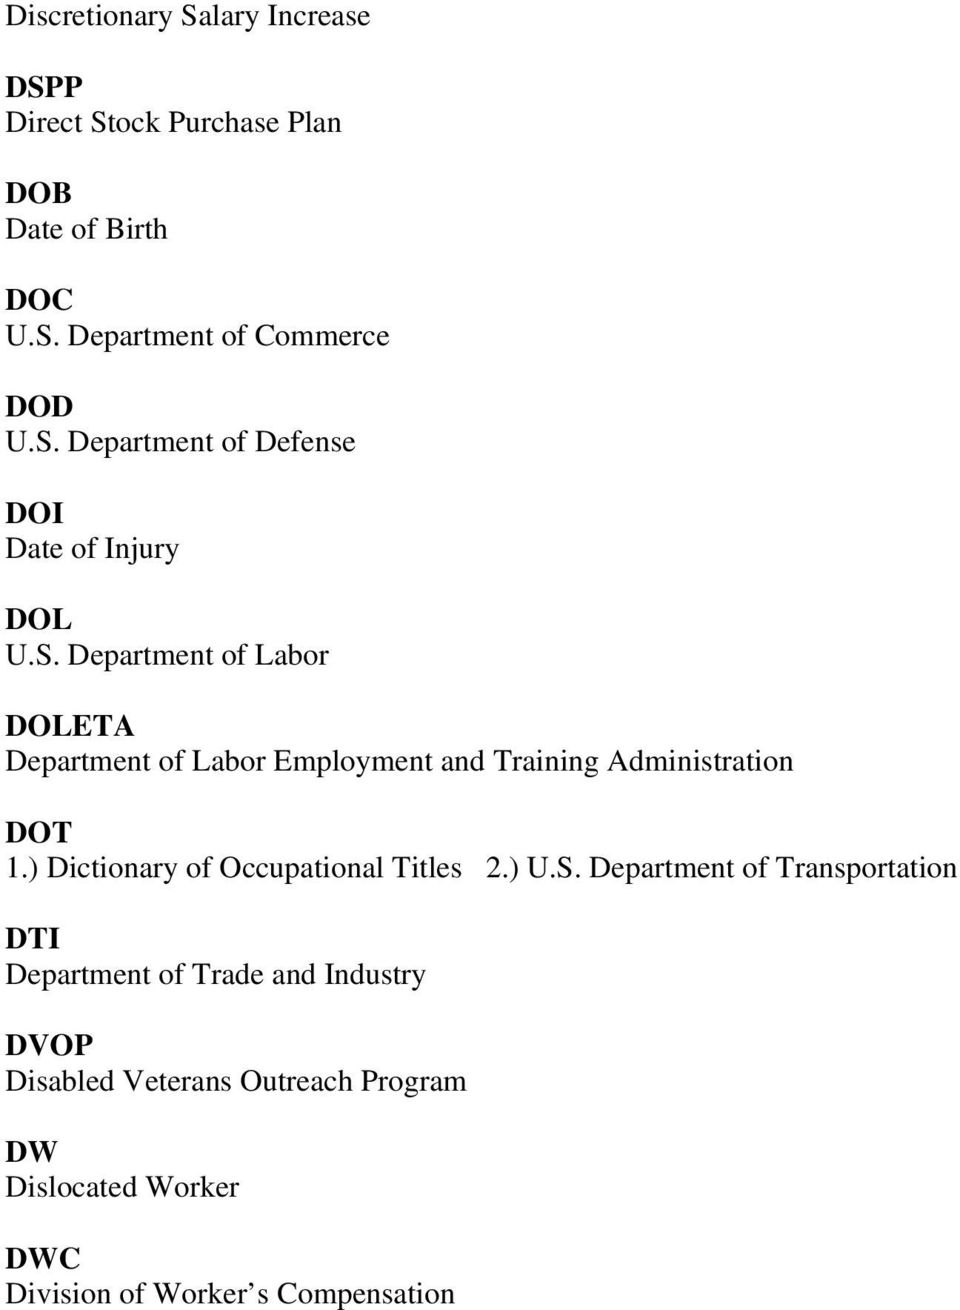 ) Dictionary of Occupational Titles 2.) U.S.